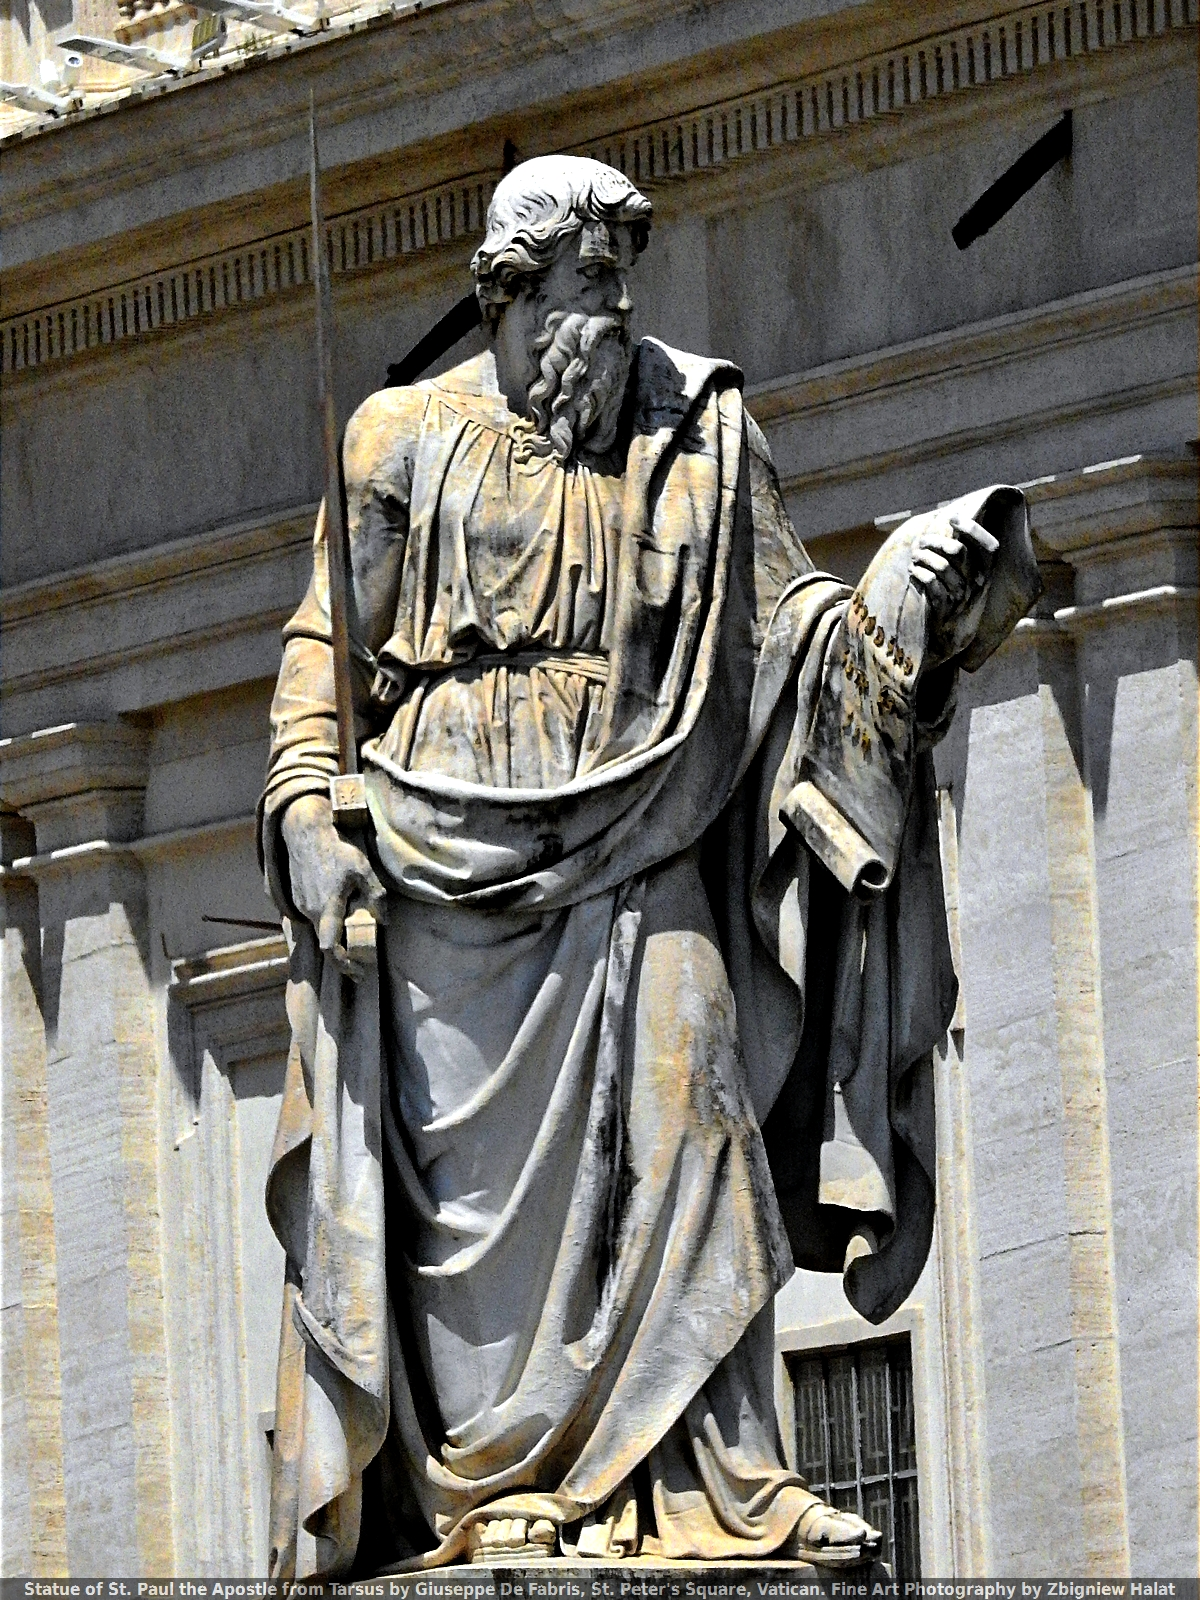 Statue of St. Paul the Apostle from Tarsus by Giuseppe De Fabris, St. Peter's Square, Vatican. Fine Art Photography by Zbigniew Halat